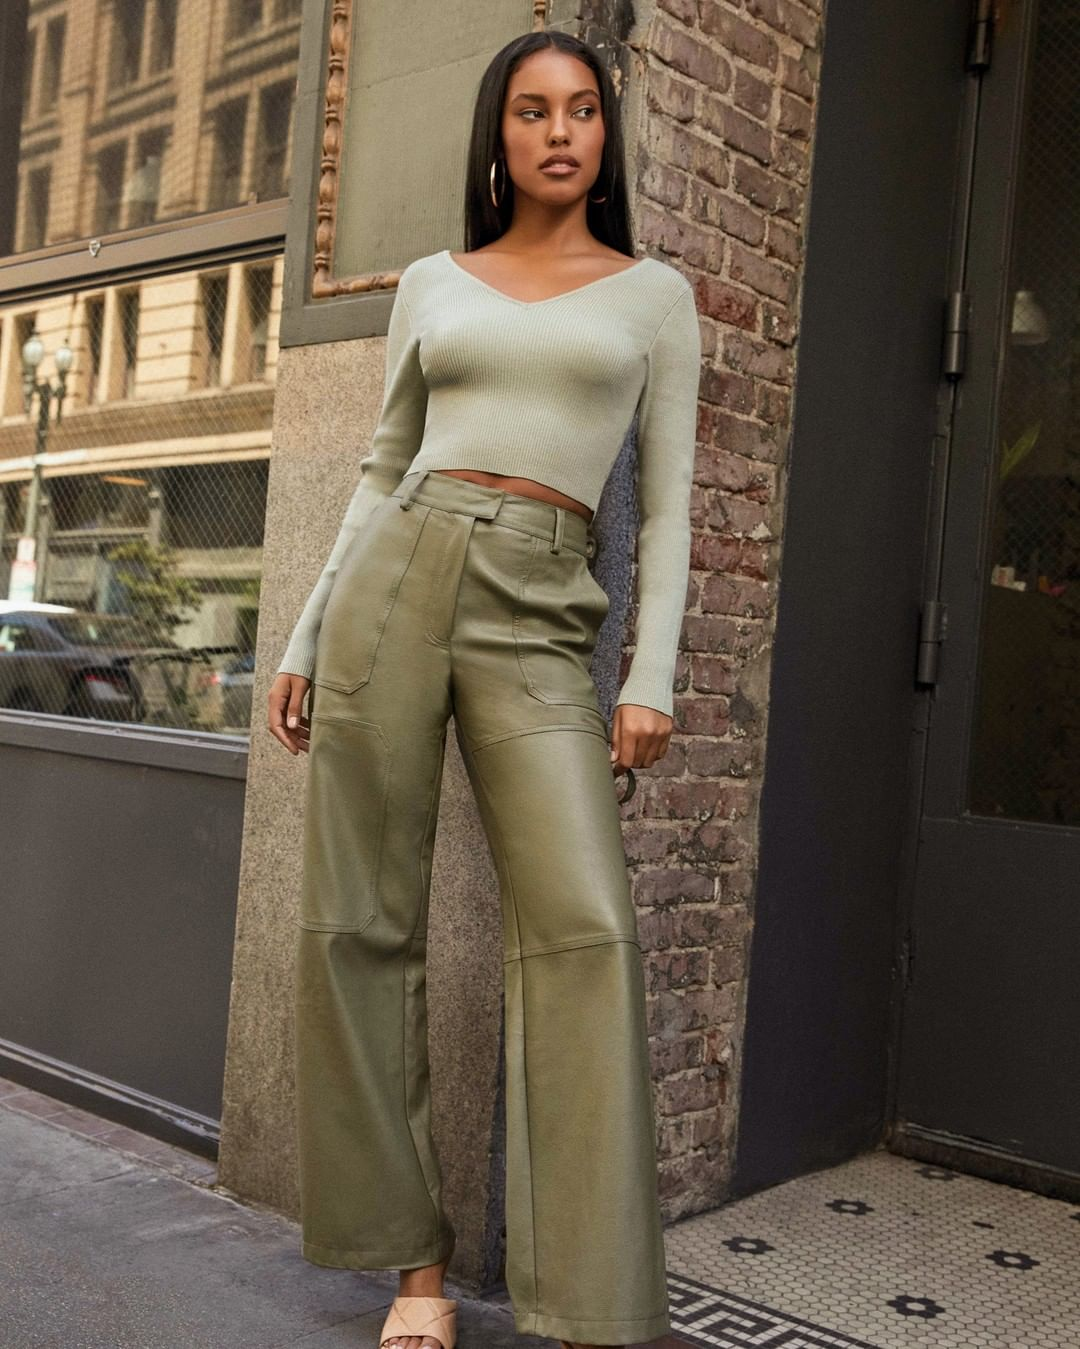 Woman in a green outfit and leather pants